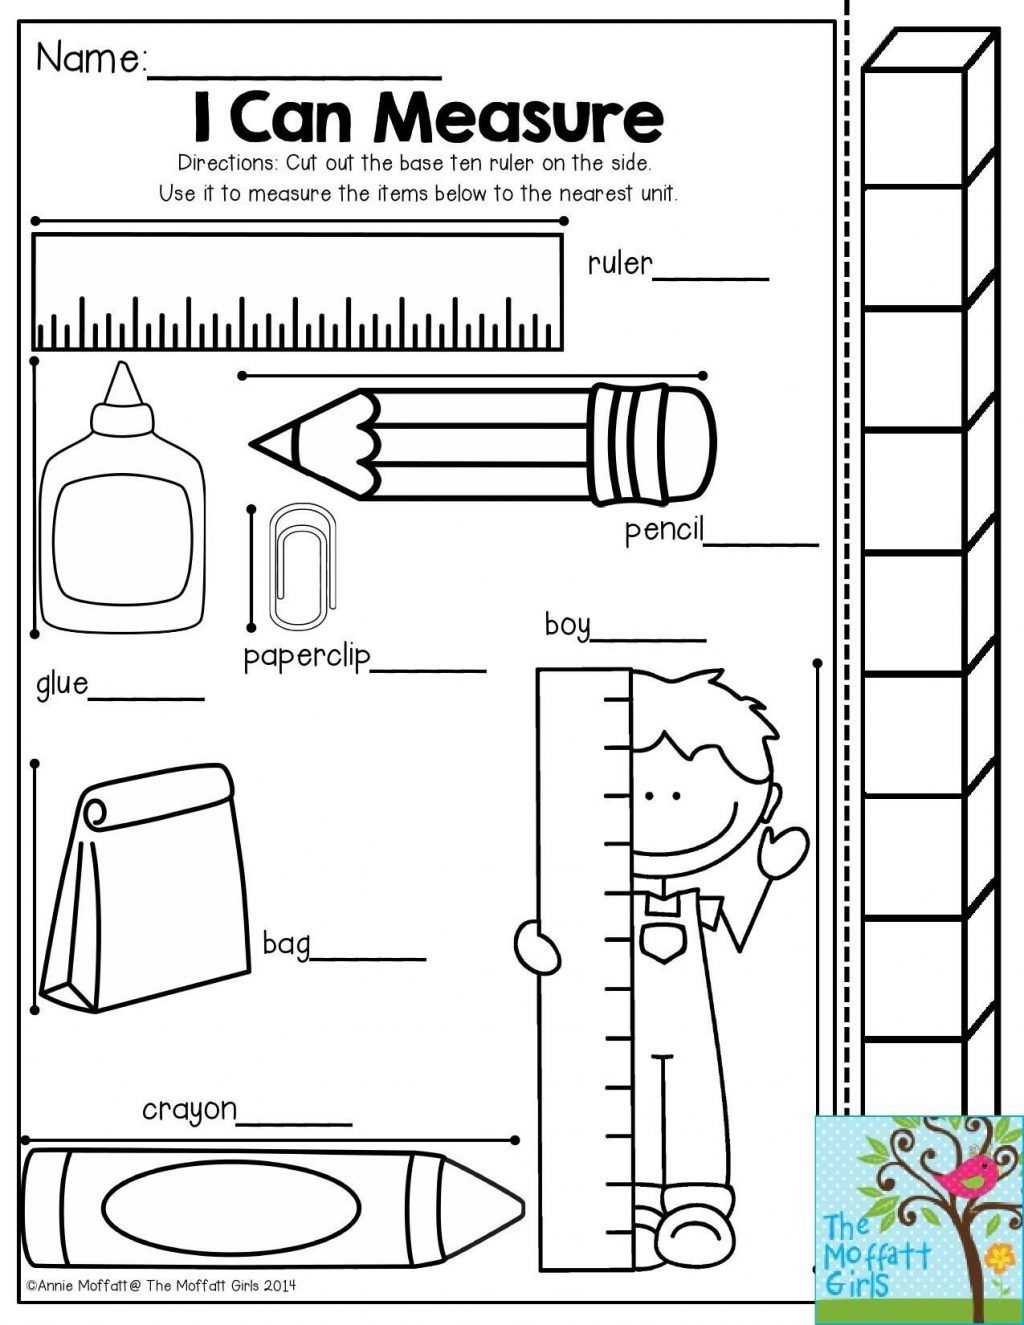 Digital Clock Worksheets For 1st Grade